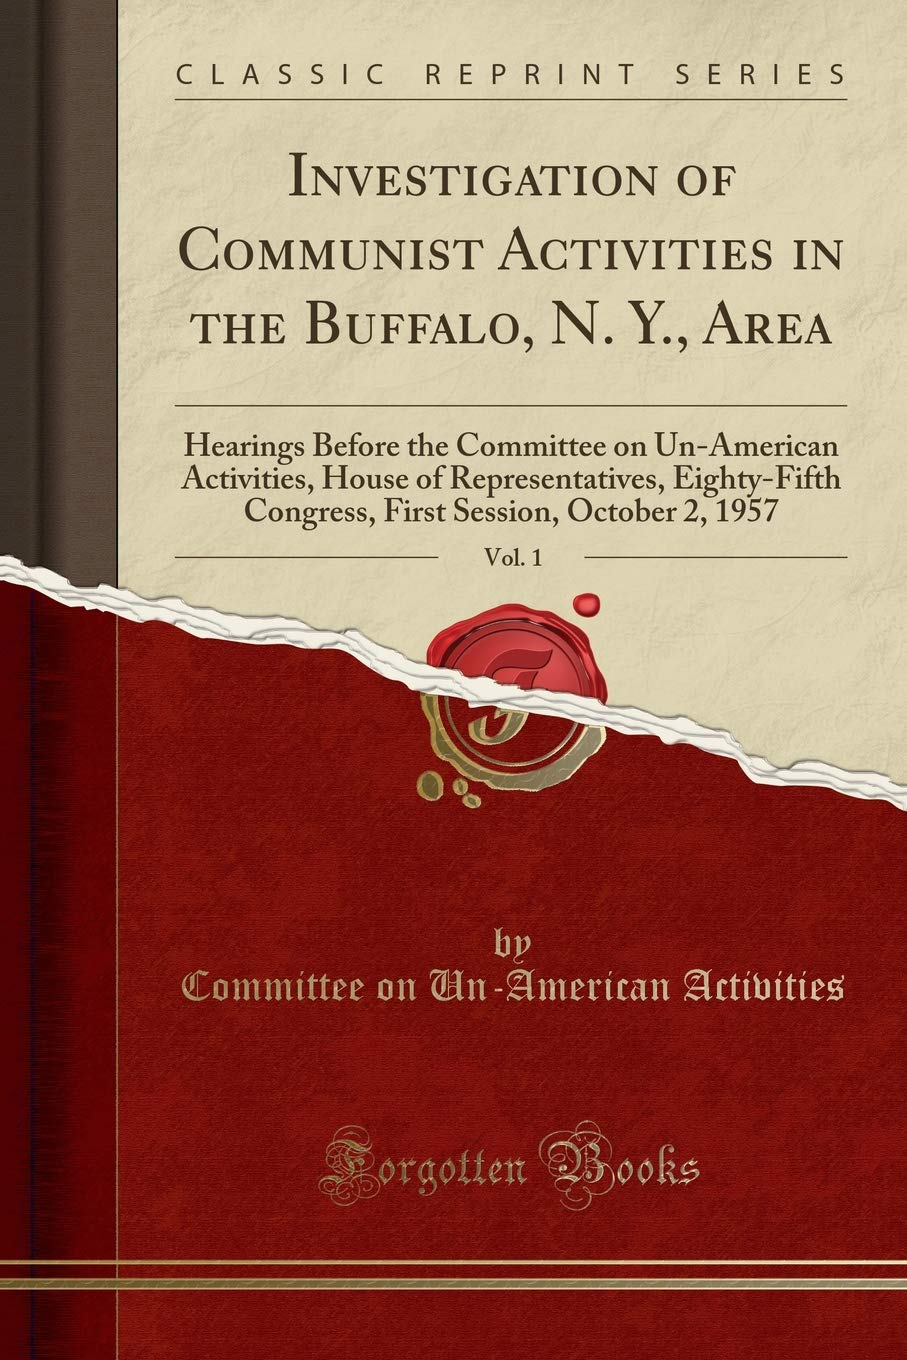 Download Investigation of Communist Activities in the Buffalo, N. Y., Area, Vol. 1: Hearings Before the Committee on Un-American Activities, House of ... Session, October 2, 1957 (Classic Reprint) ebook